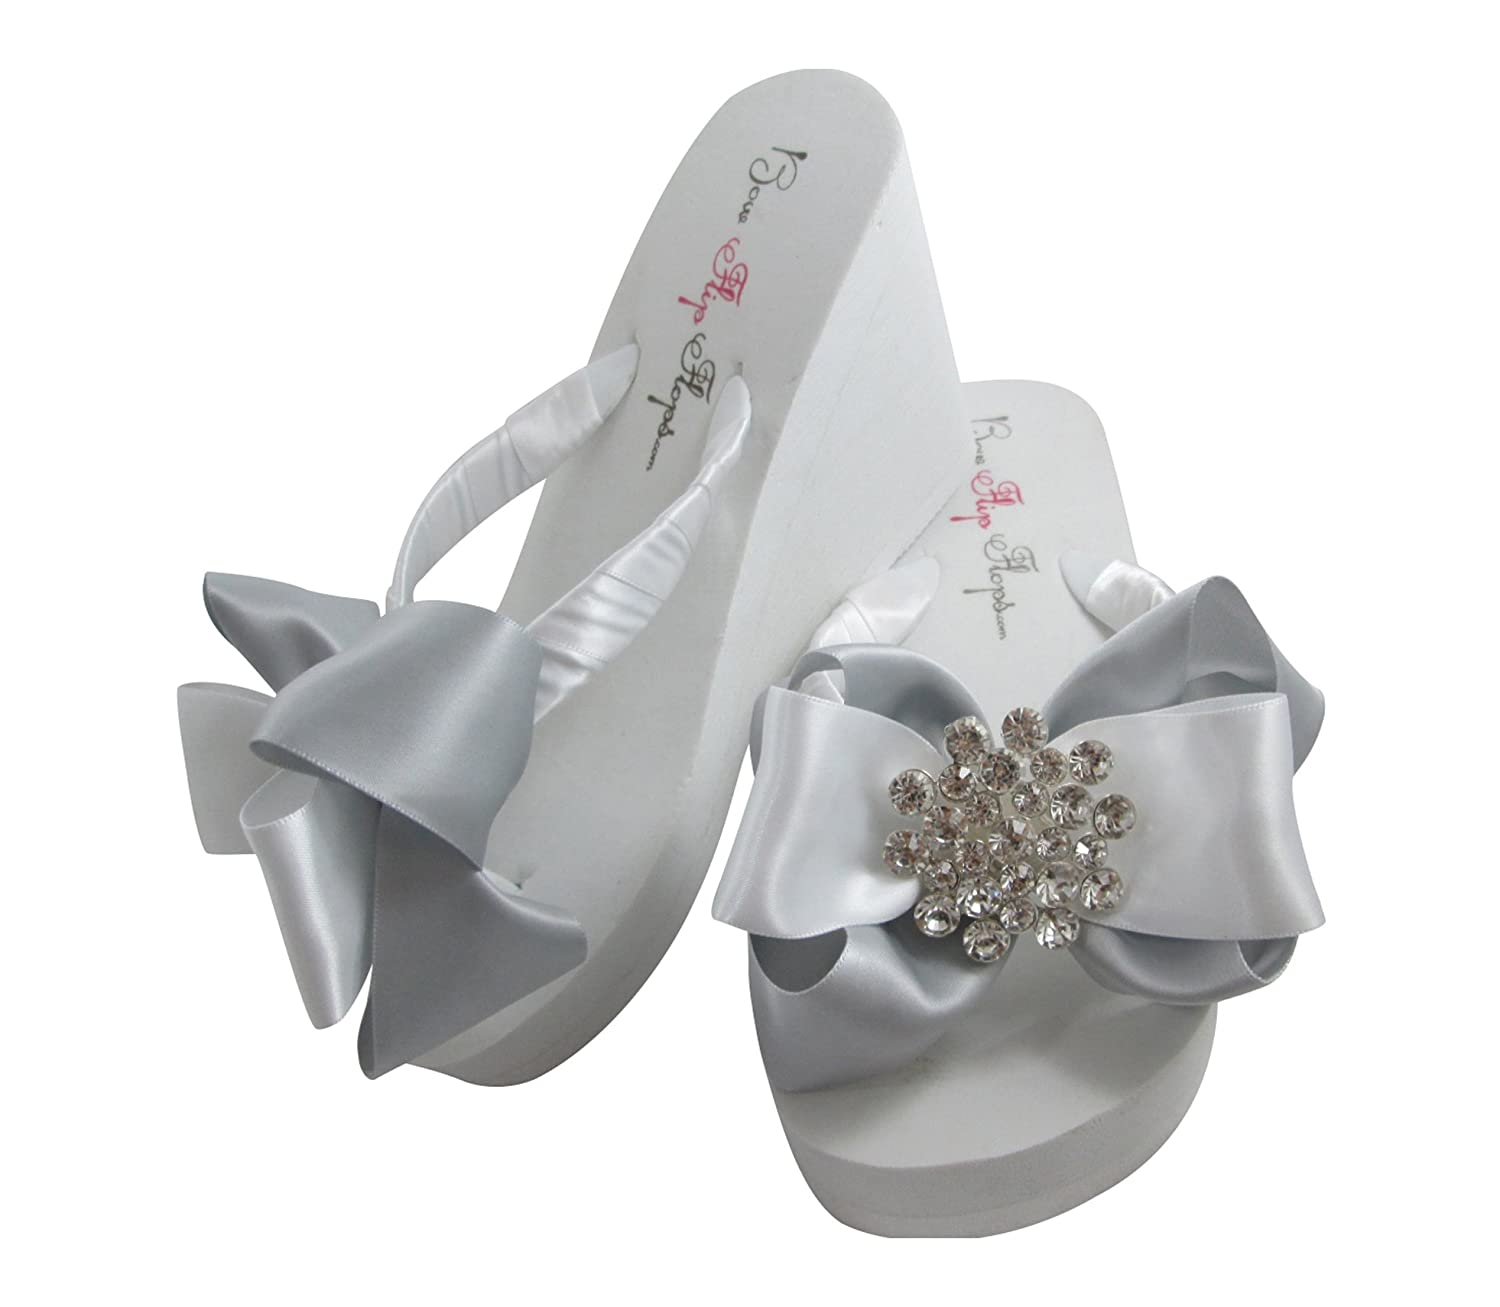 f591b72a12133 Silver Wedge or Flat Heeled Sandals for Beach Wedding